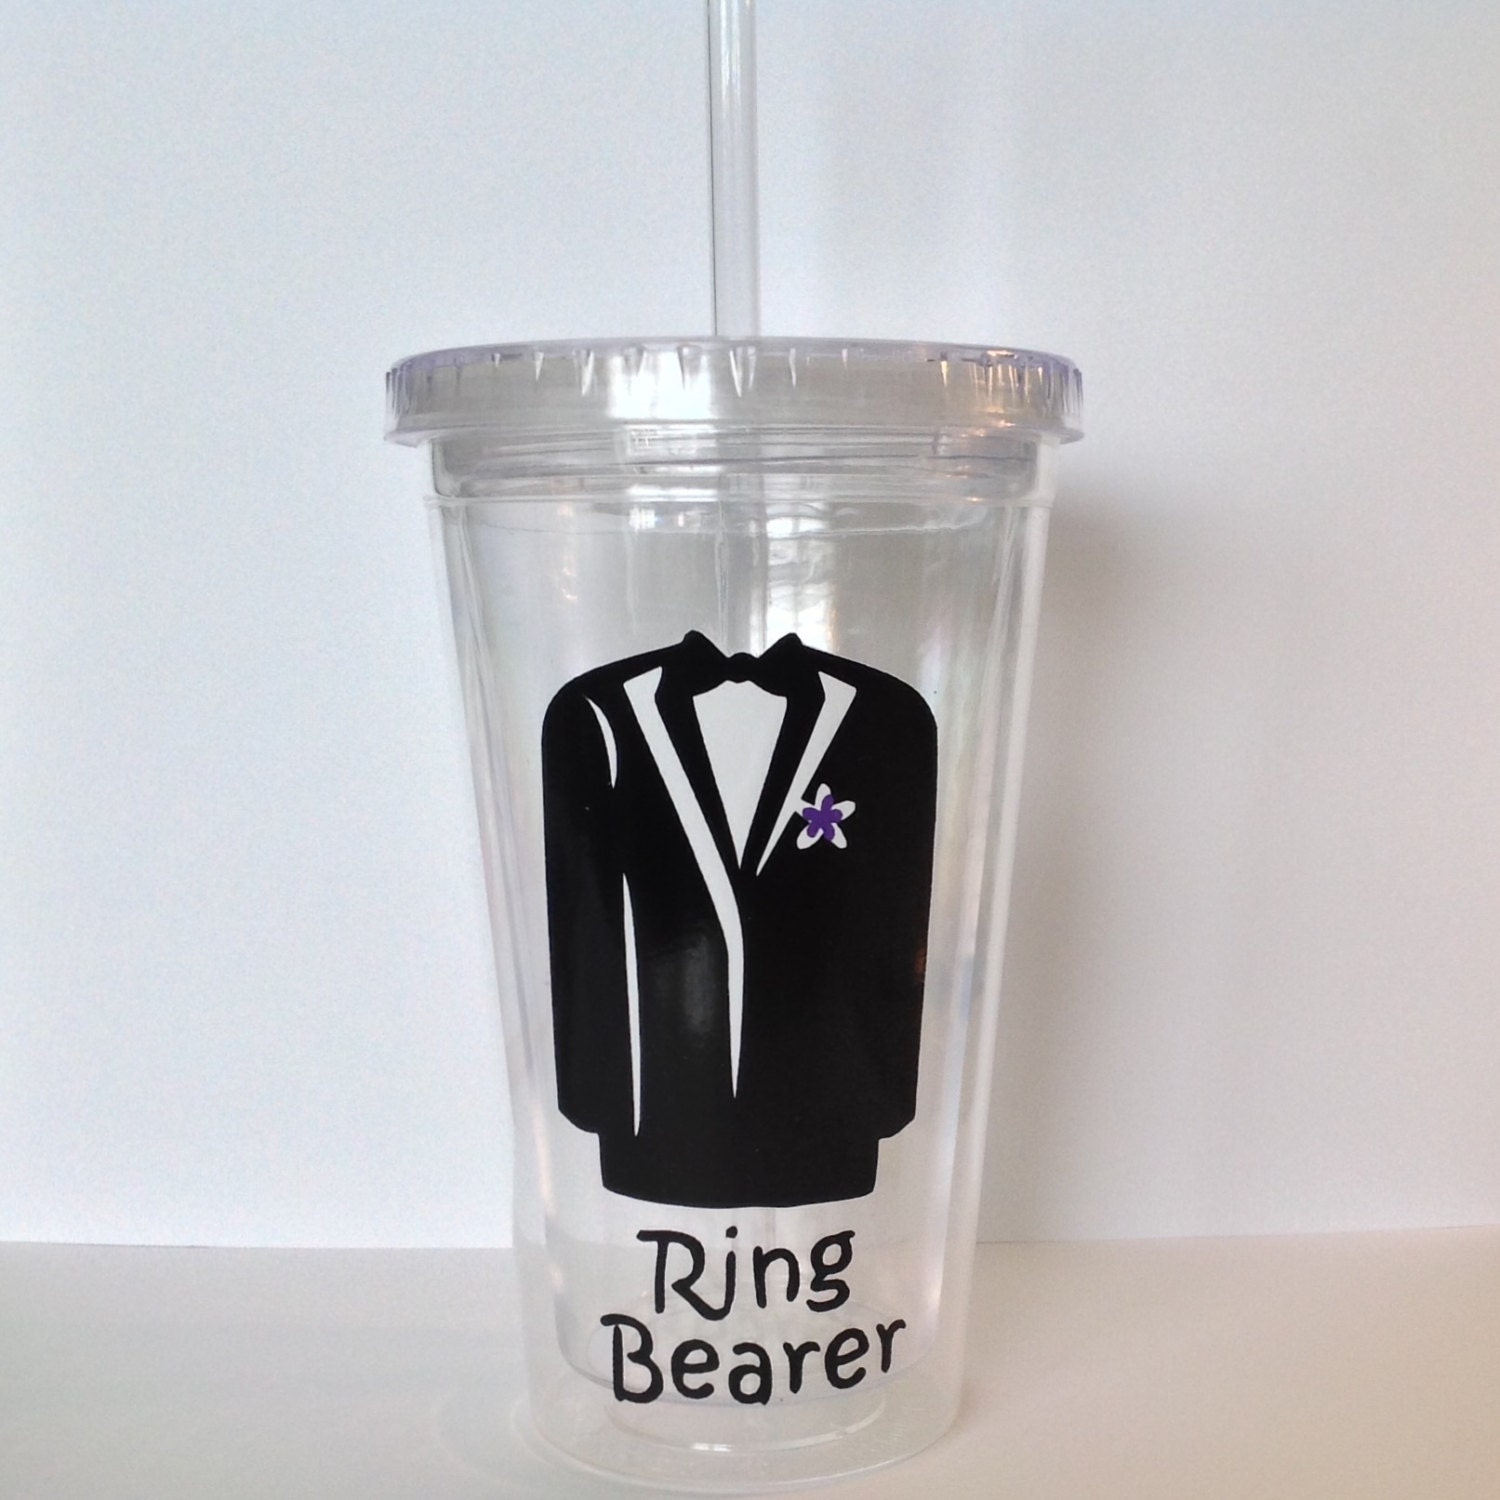 Diy ring bearer vinyl decals make your own wedding tumbler or for Diy ring bearer